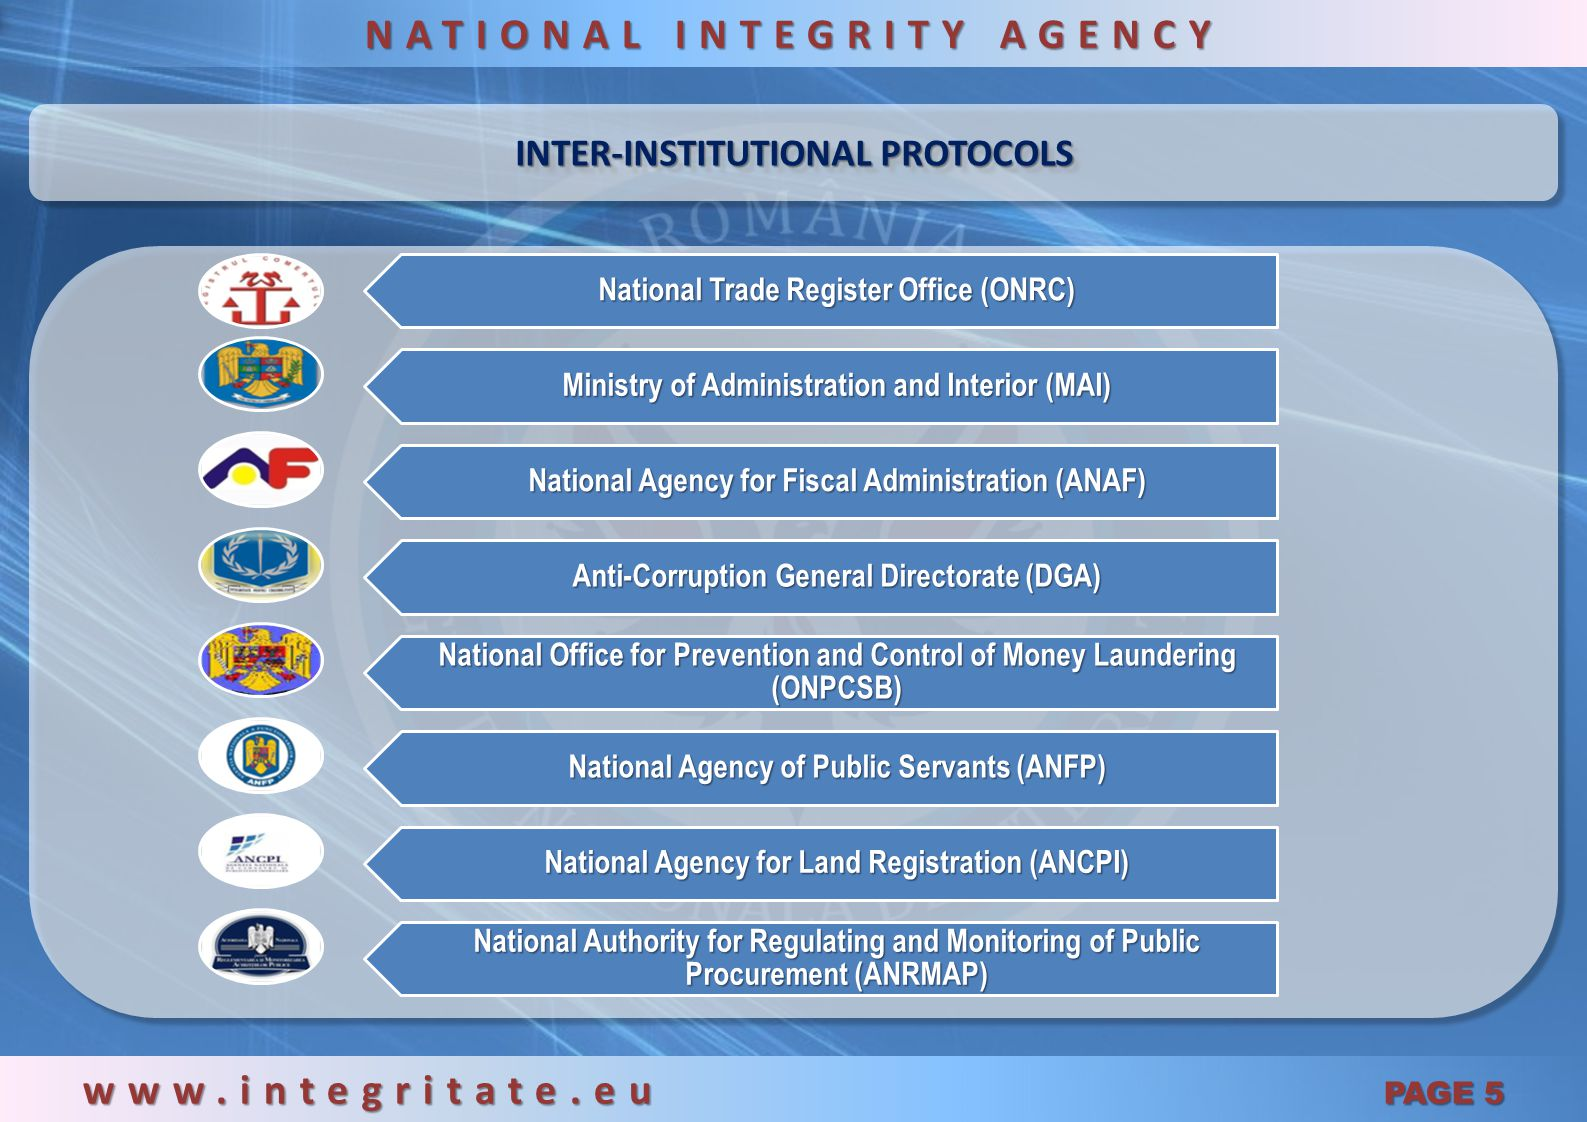 ACCESING RELEVANT DOCUMENTS AND DATA FROM OTHER INSTITUTION / AUTHORITIES: www.integritate.eu PAGE 15 NATIONAL INTEGRITY AGENCY Integrity inspector requested various documents and data from other public or private institutions / authorities: Arges County Council Personal ID Databases within the Ministry of Interior National Office of Trade Registrar National Management Center for Information Society Land Registrar Tax Registrar Other institution After receiving all the relevant documents, integrity inspector started the assessment of the information gathered from the institutions mentioned above